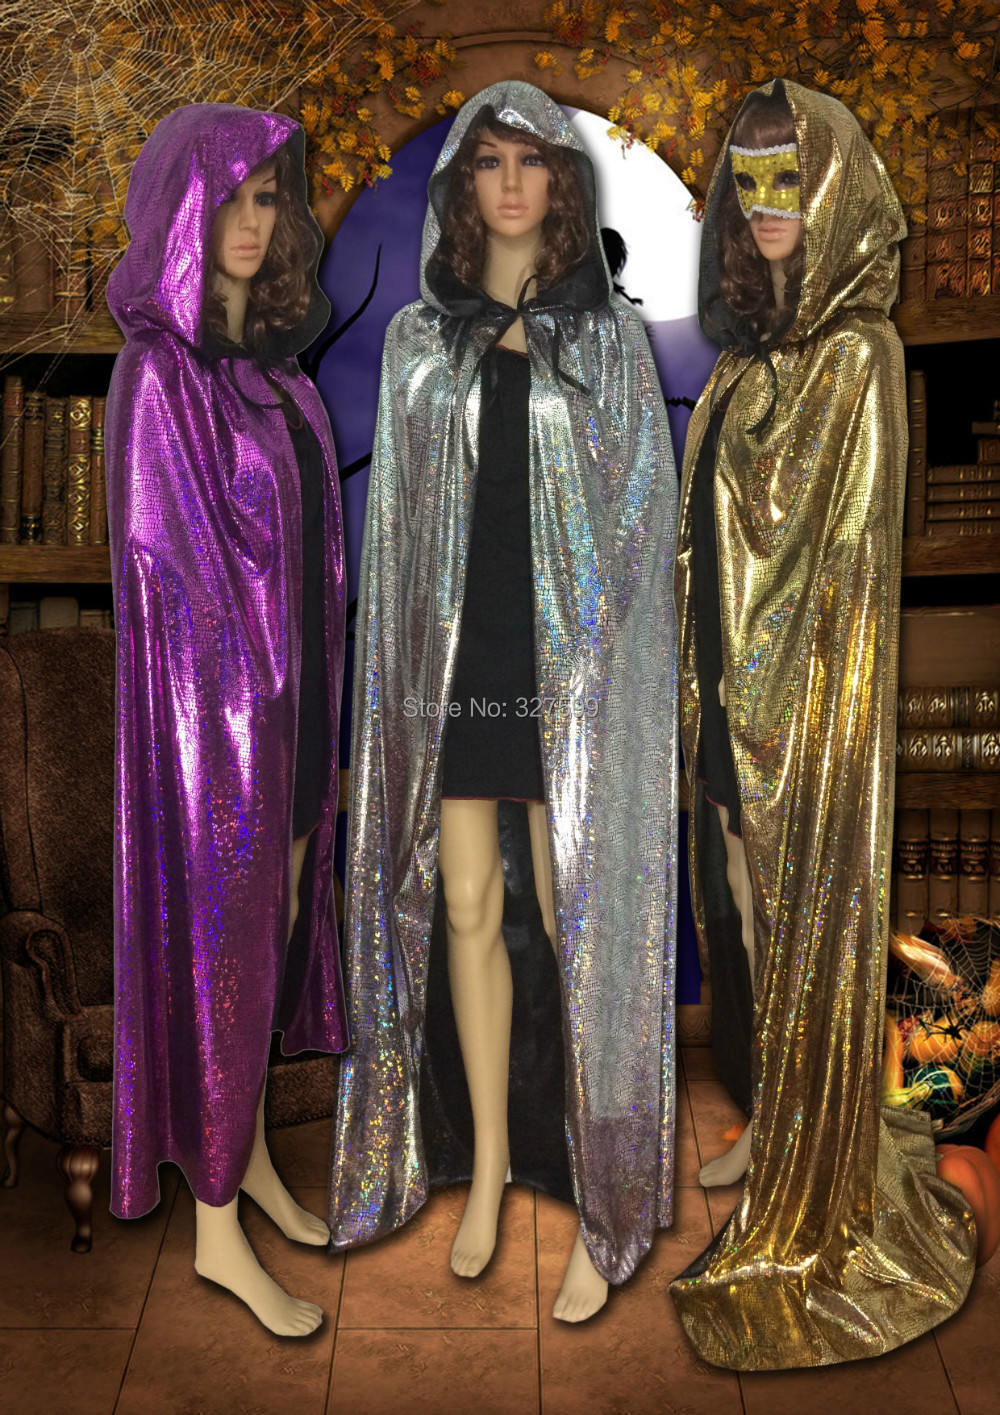 Aliexpress.com : Buy Wholesale Colorful Laser adult hooded cloak ...